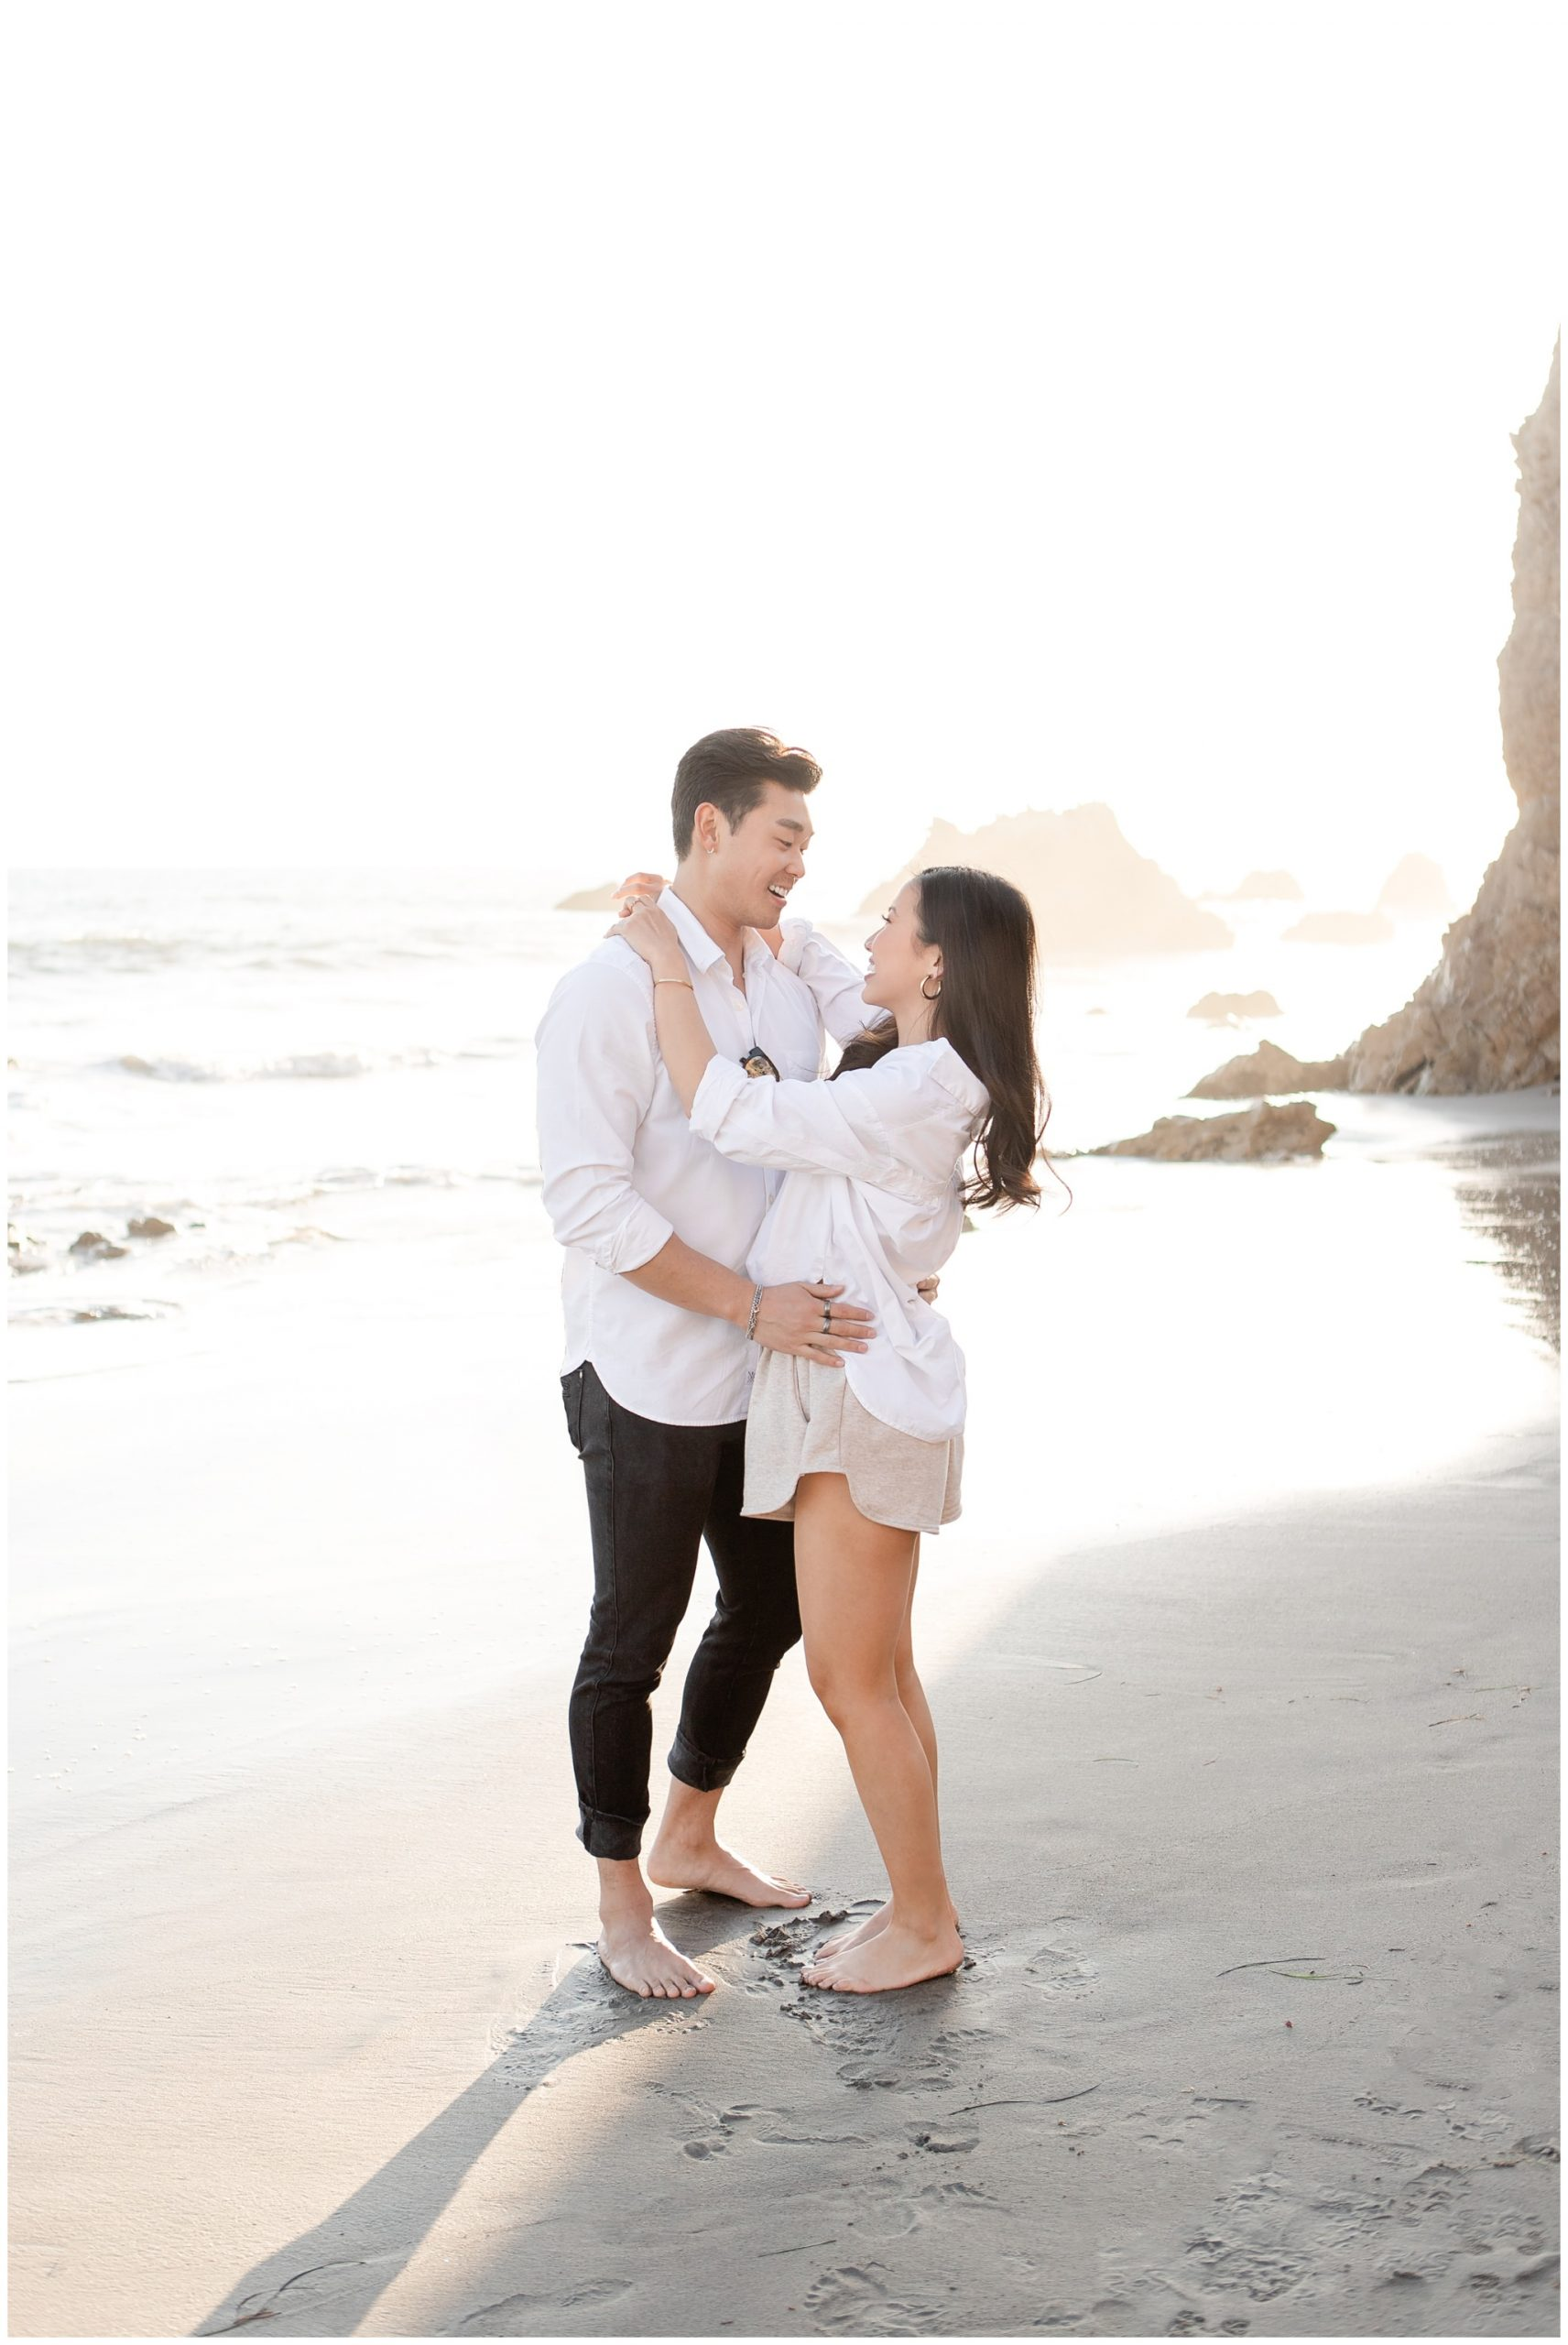 Engagement pictures on beach during sunset. CA